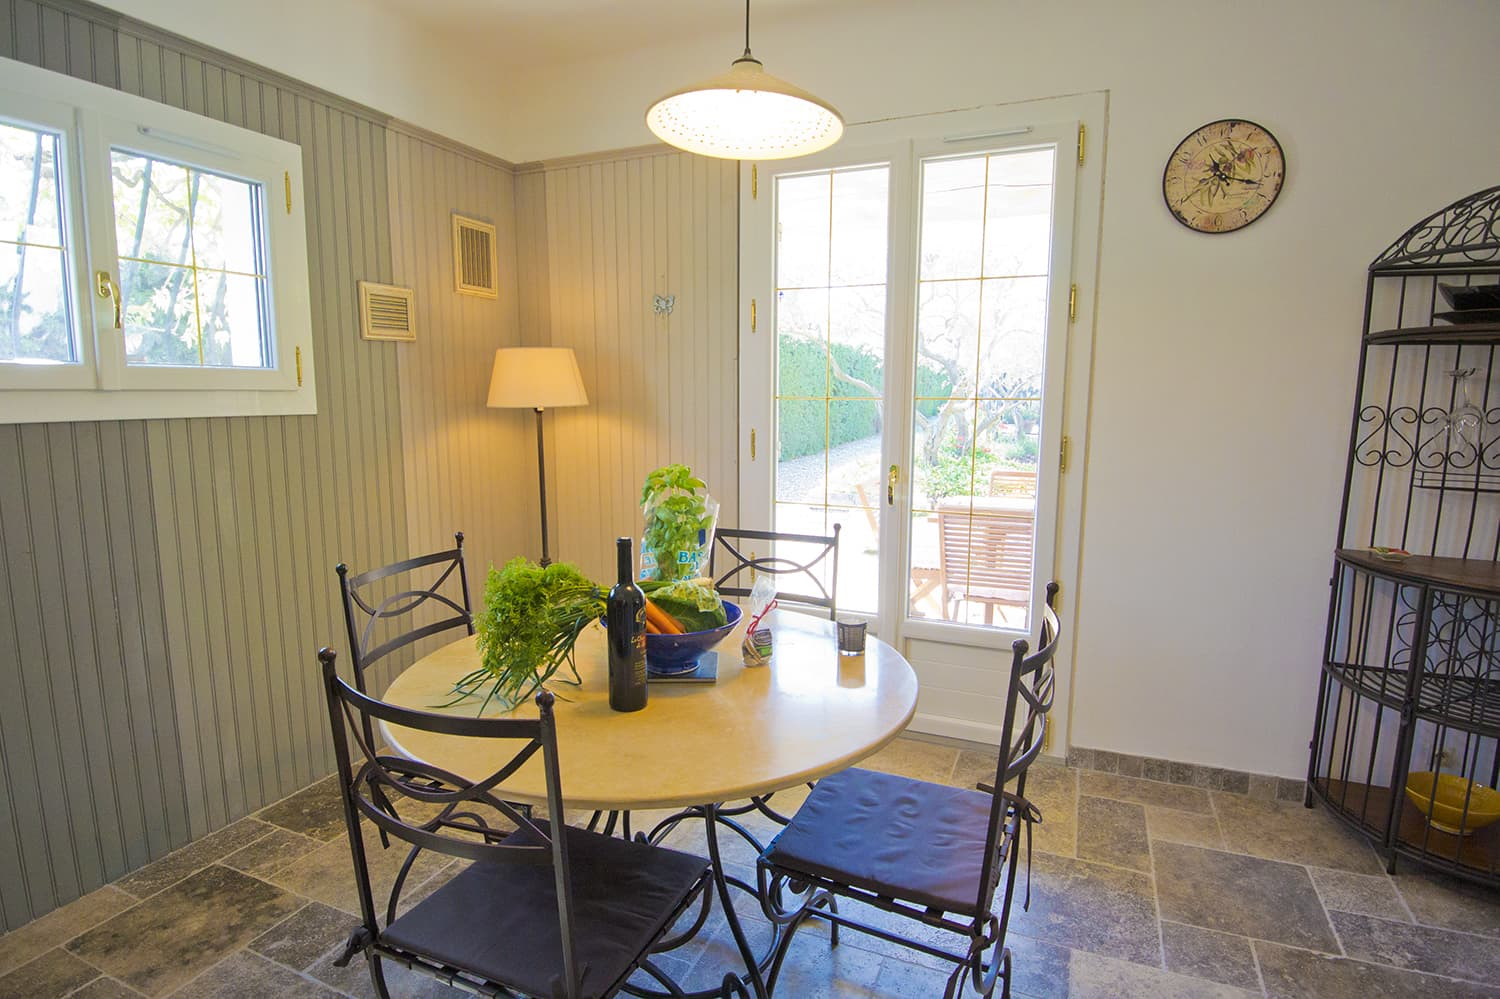 Breakfast room in Provence rental home